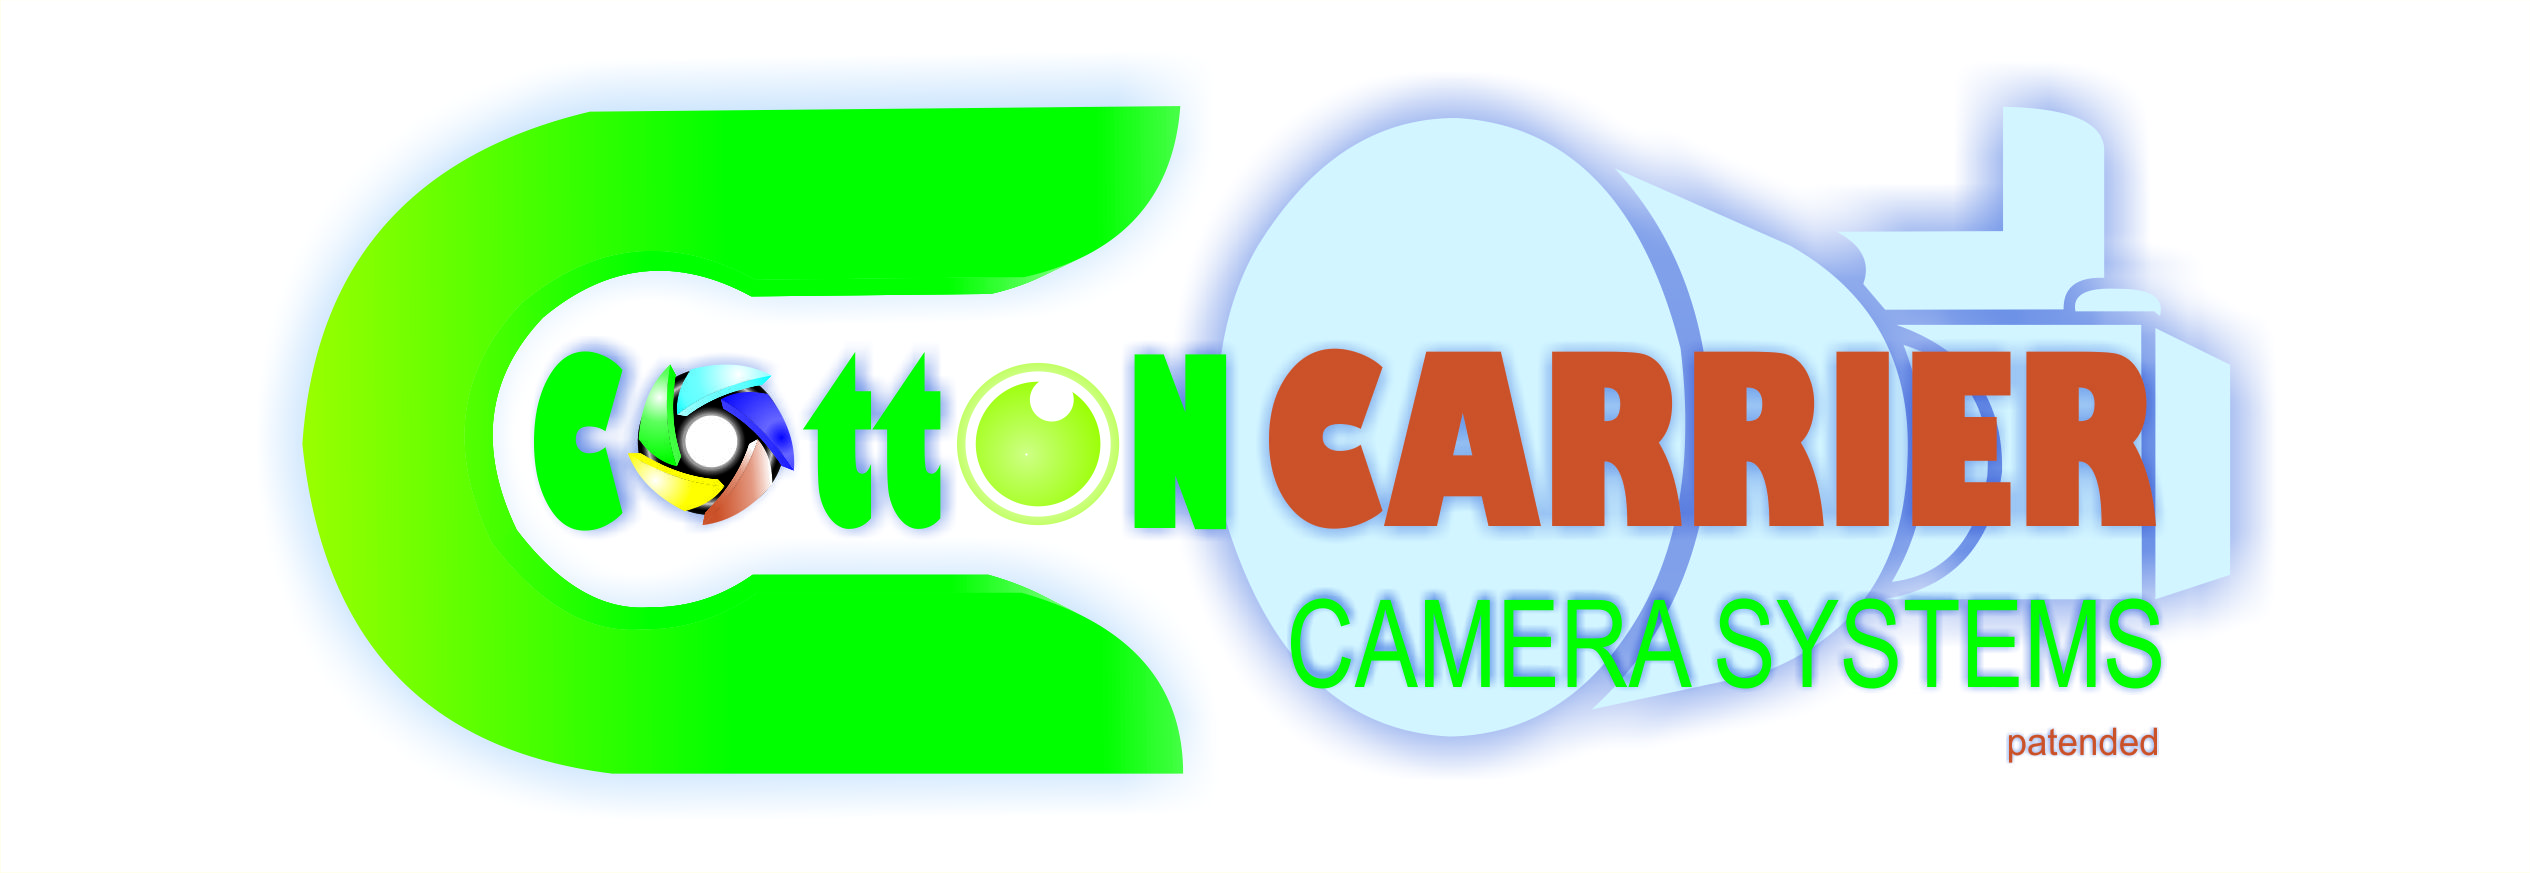 Logo Design by Teguh Hanuraga - Entry No. 1 in the Logo Design Contest Cotton Carrier Camera Systems Logo Design.